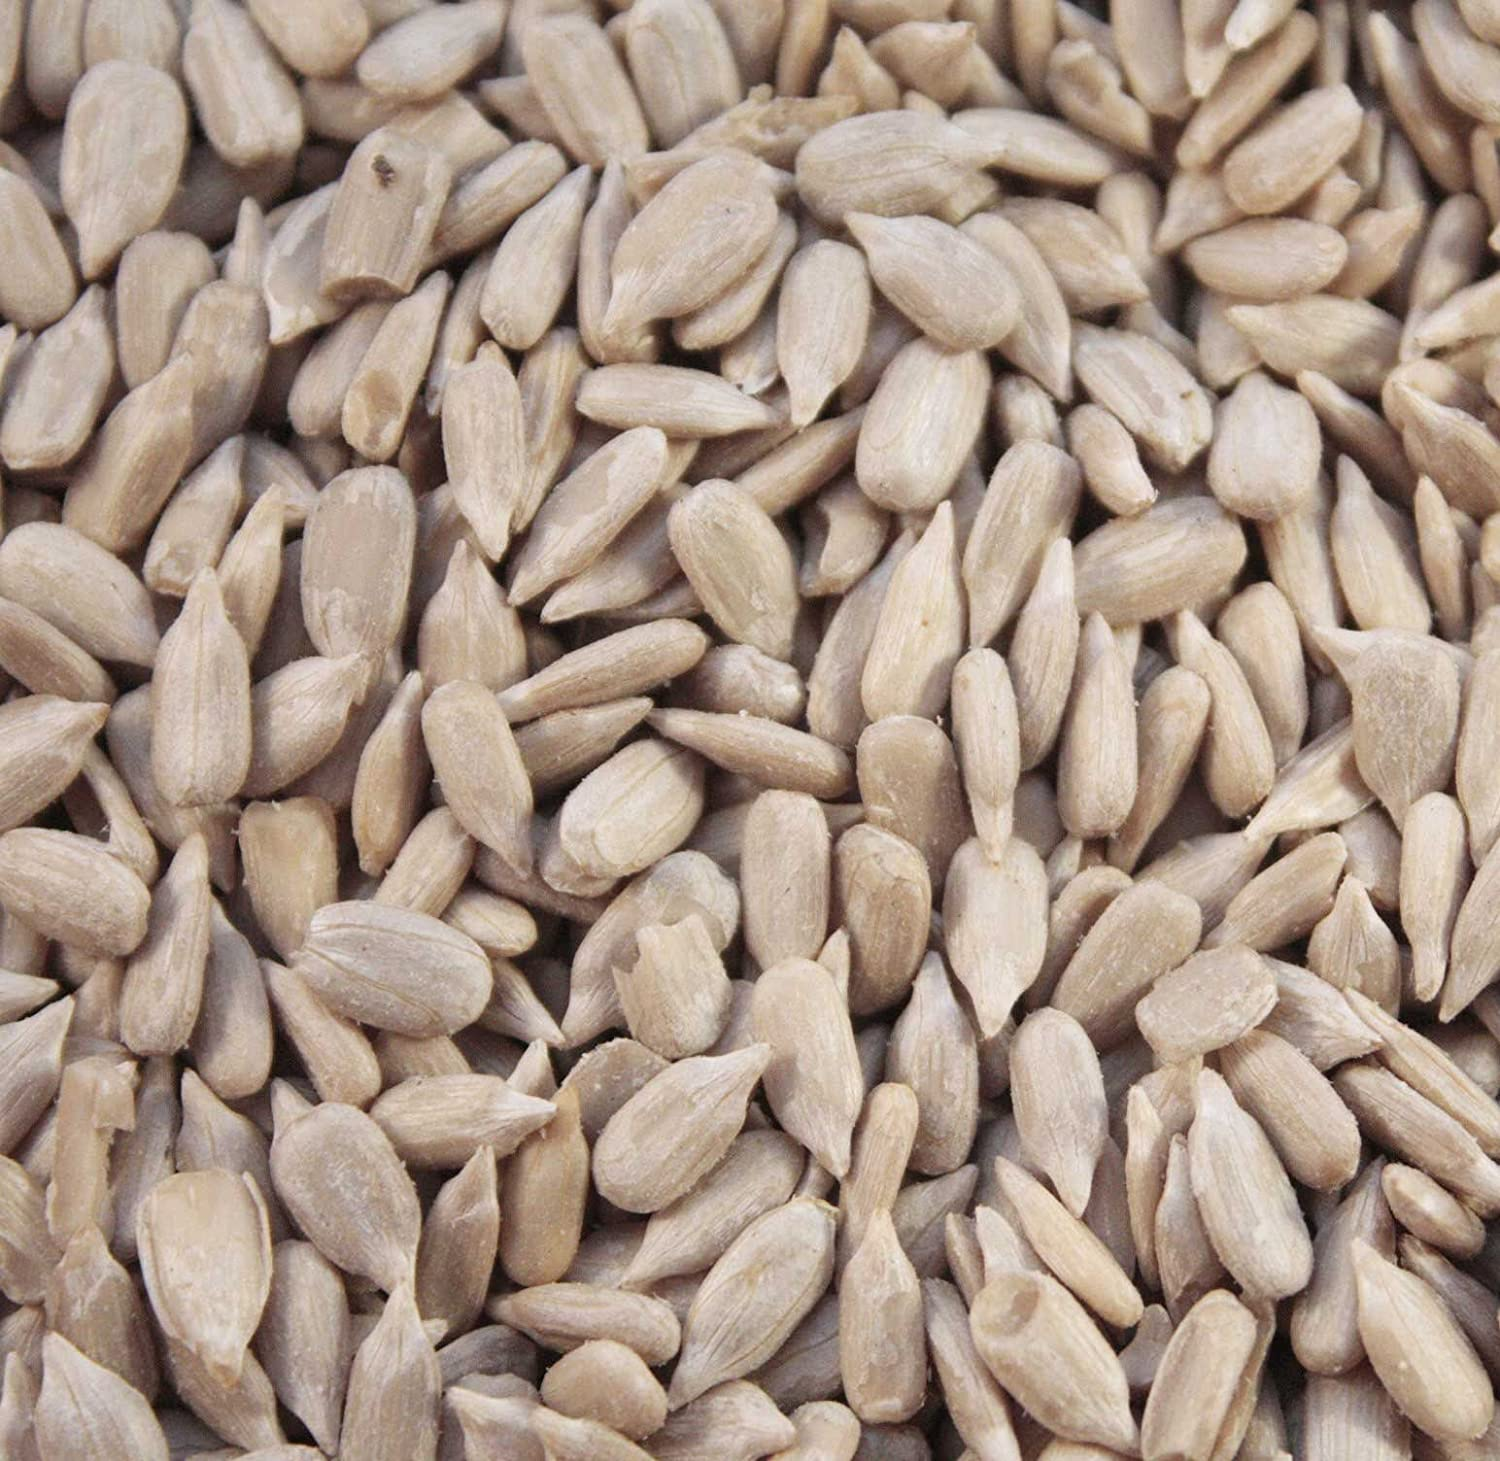 25KG MALTBYS STORES SUNFLOWER HEARTS WILD BIRD FOOD ( 2 X 12.5KG ) MALTBY'S CORN STORES